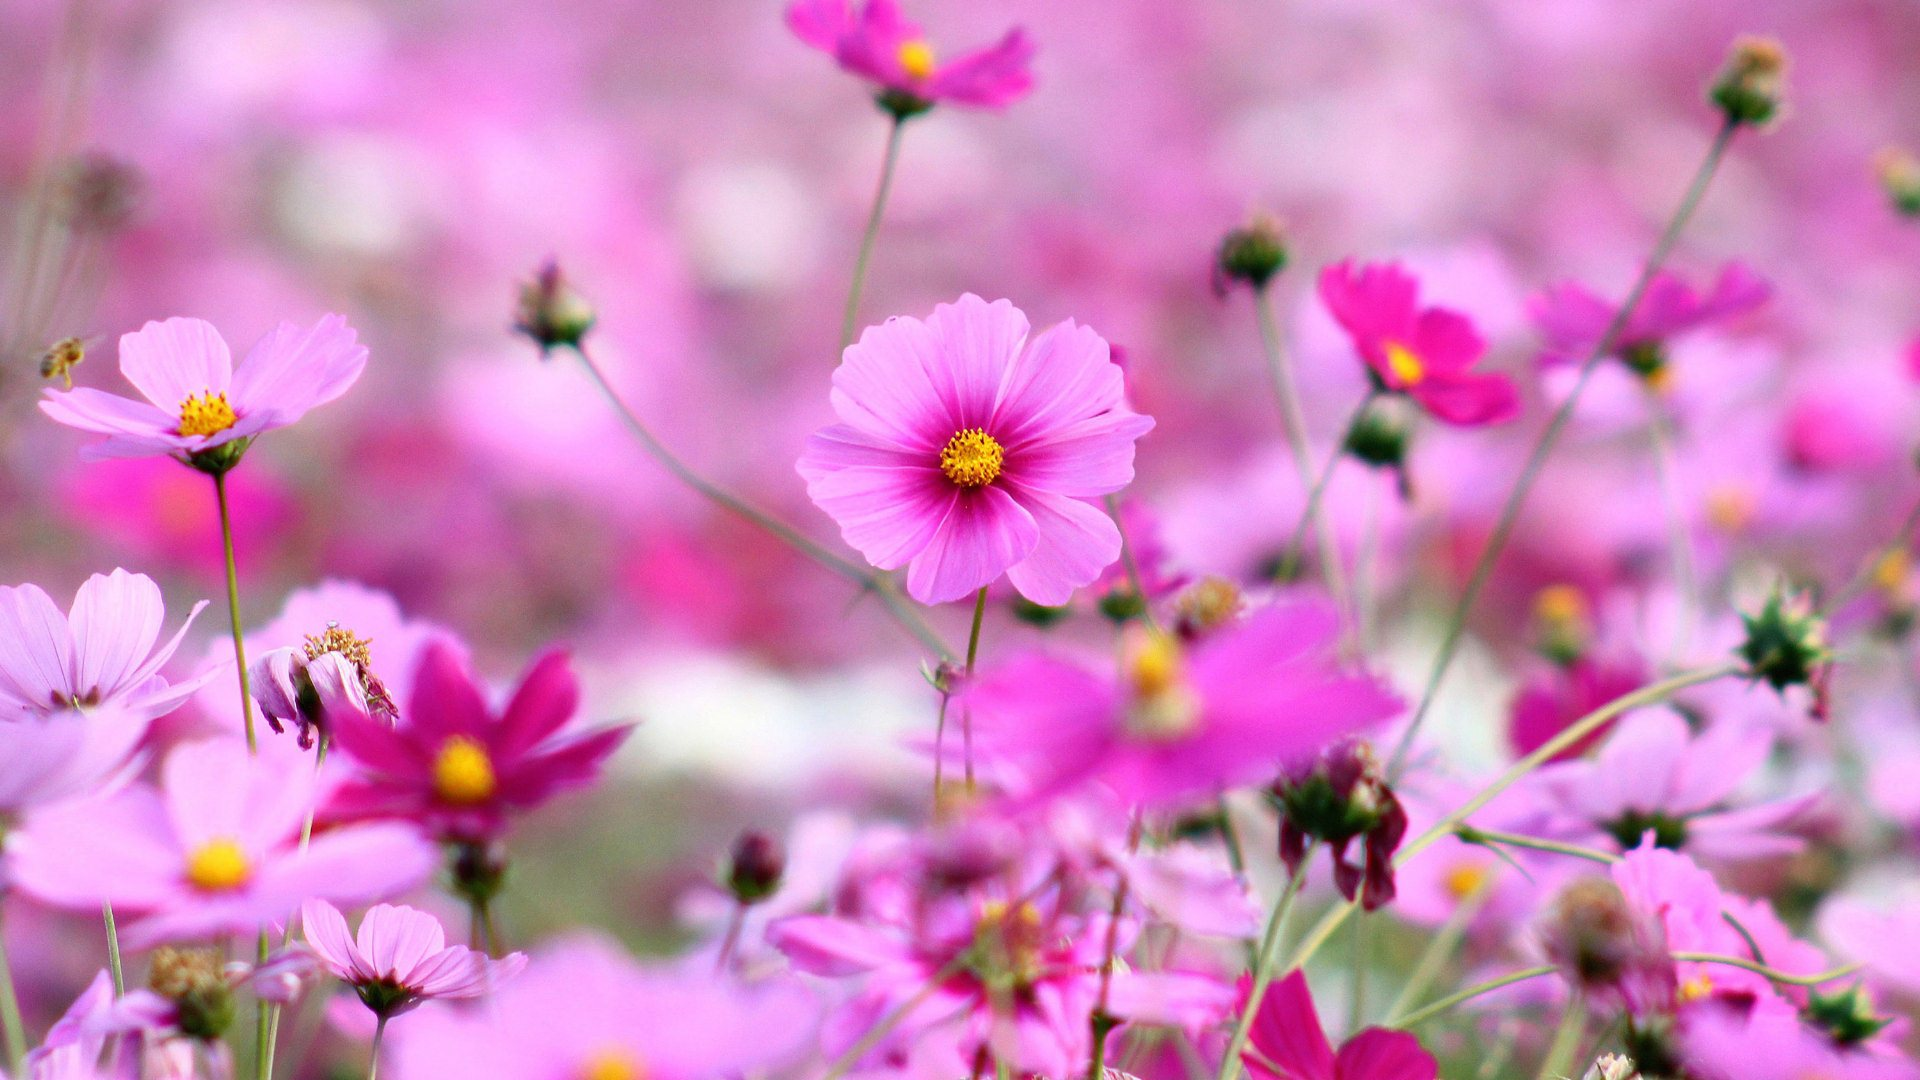 purple flowers wallpaper background